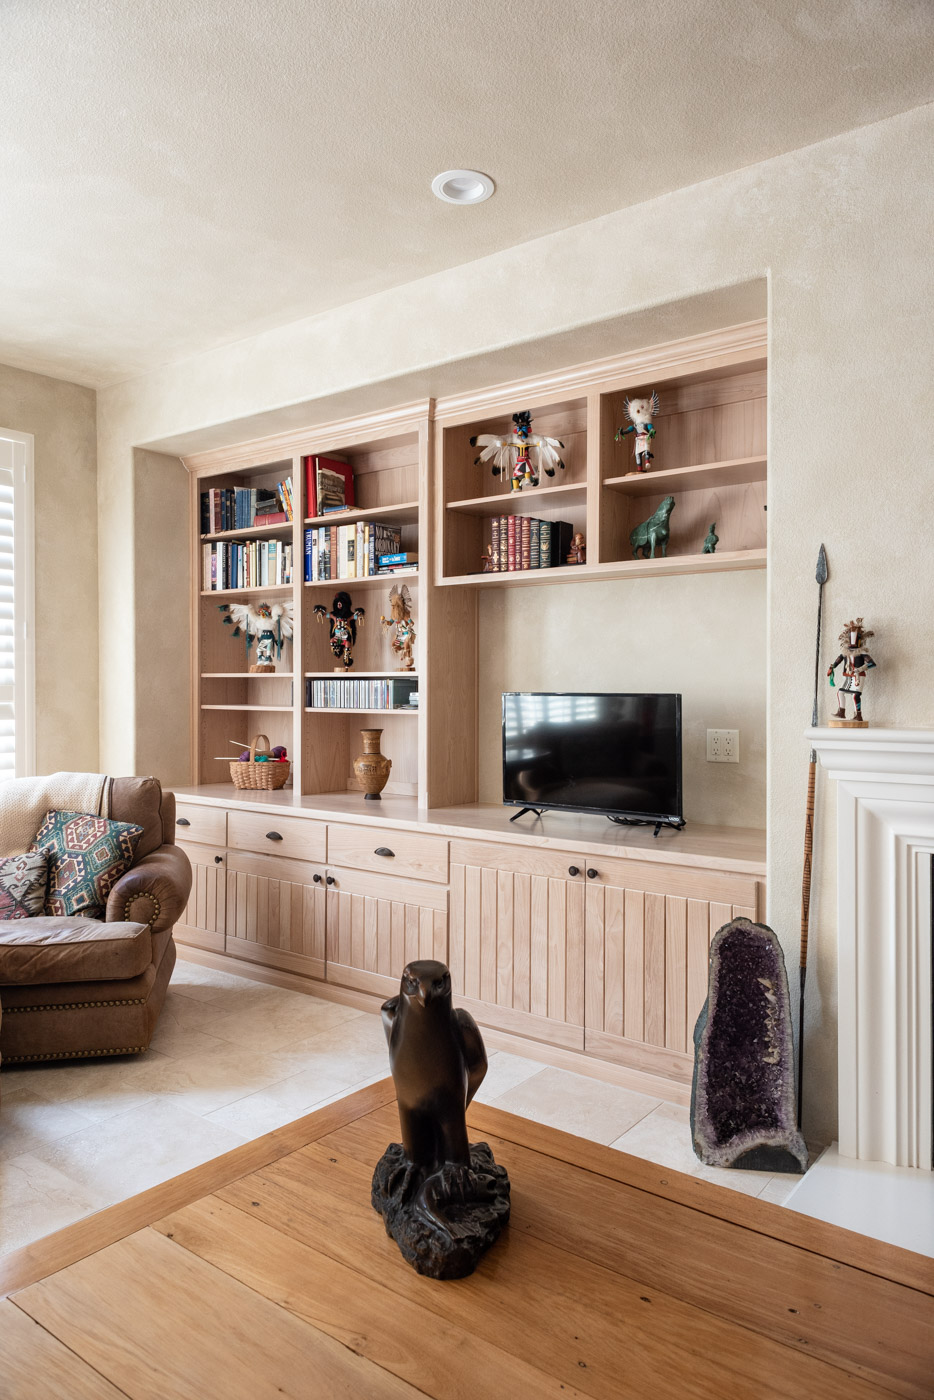 Simple Southwestern style home with custom living room built in bookcase cabinets